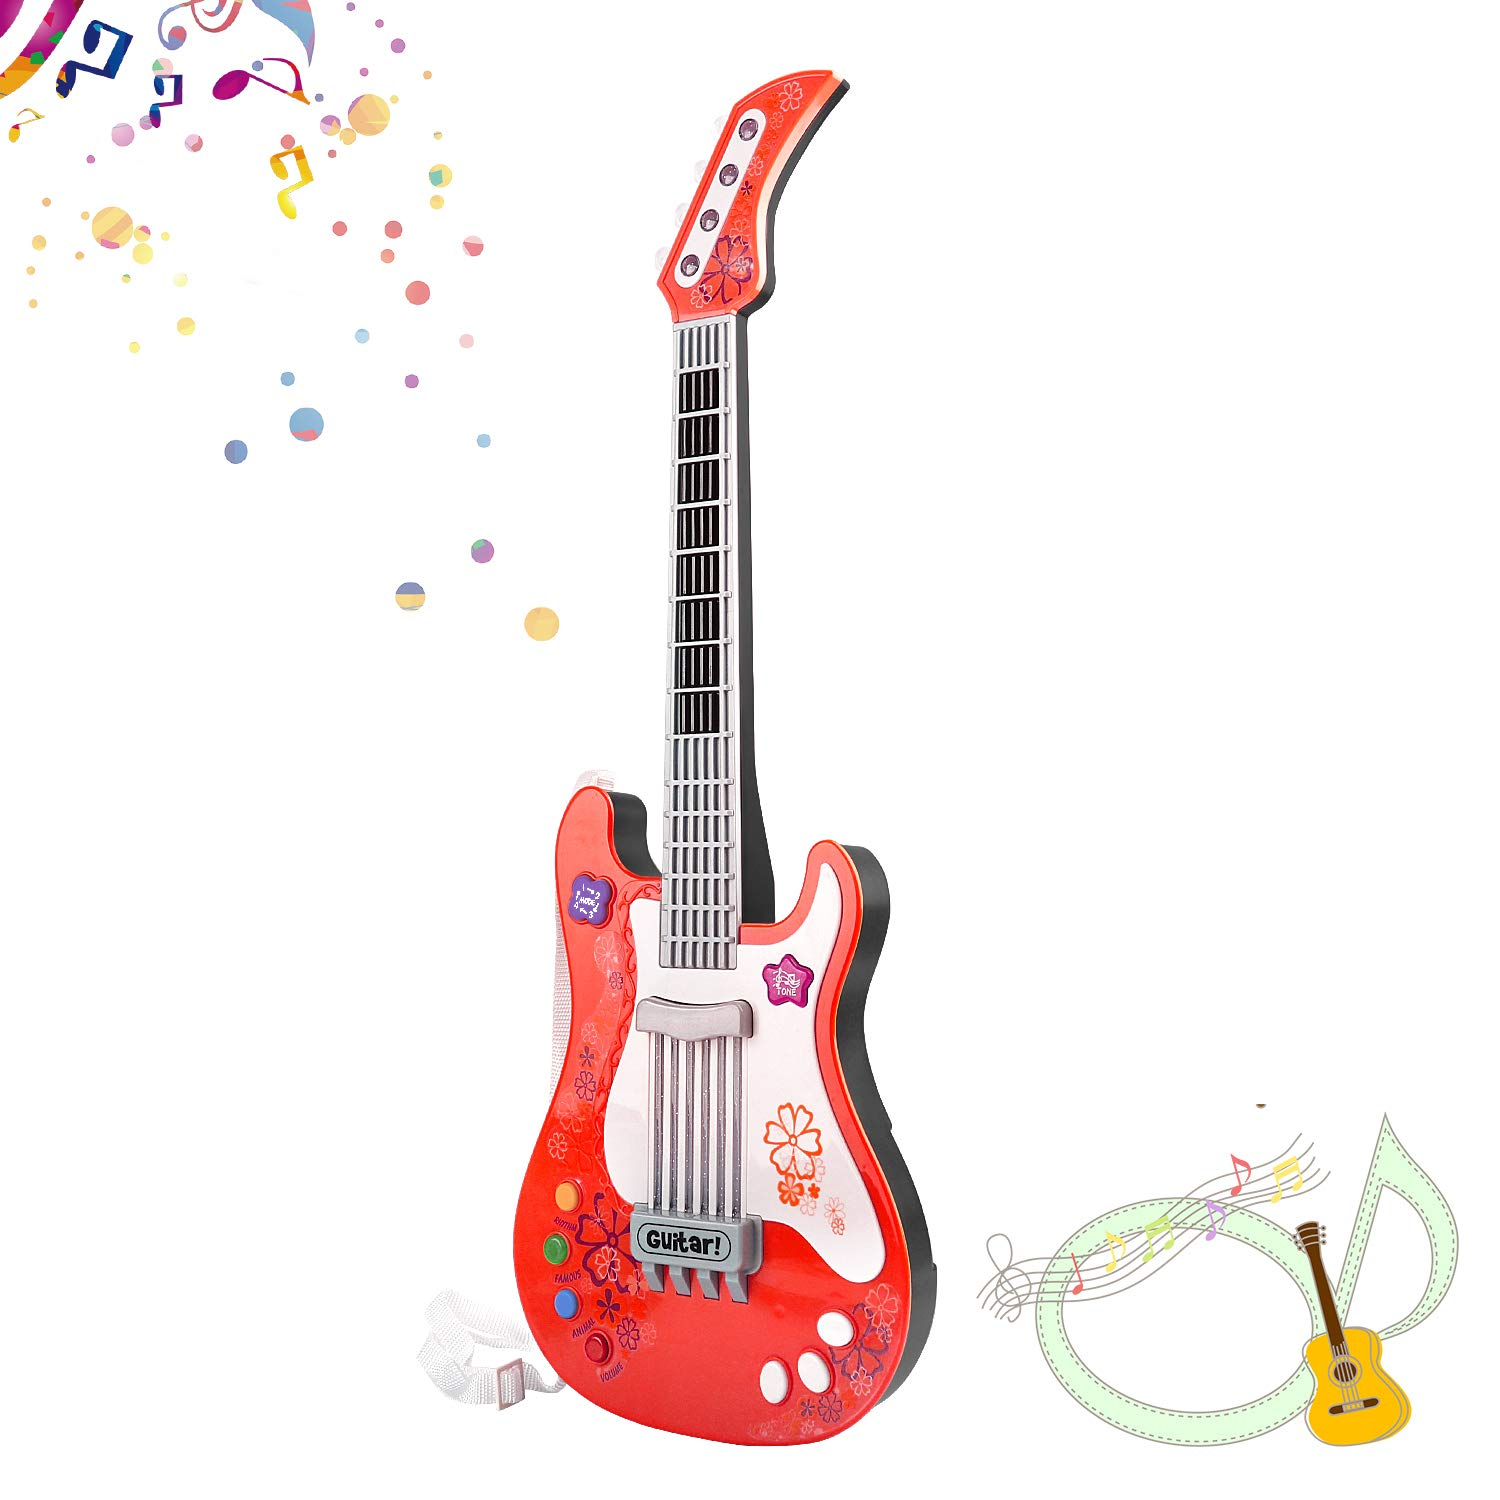 M SANMERSEN Toy Guitar for Girls Boys, Electric Guitars Toys for Kids Music Instruments Party Favor Party Decorations Guitar Toys for Kids with Vibrant Sounds Xmas Gifts for Boys Girls